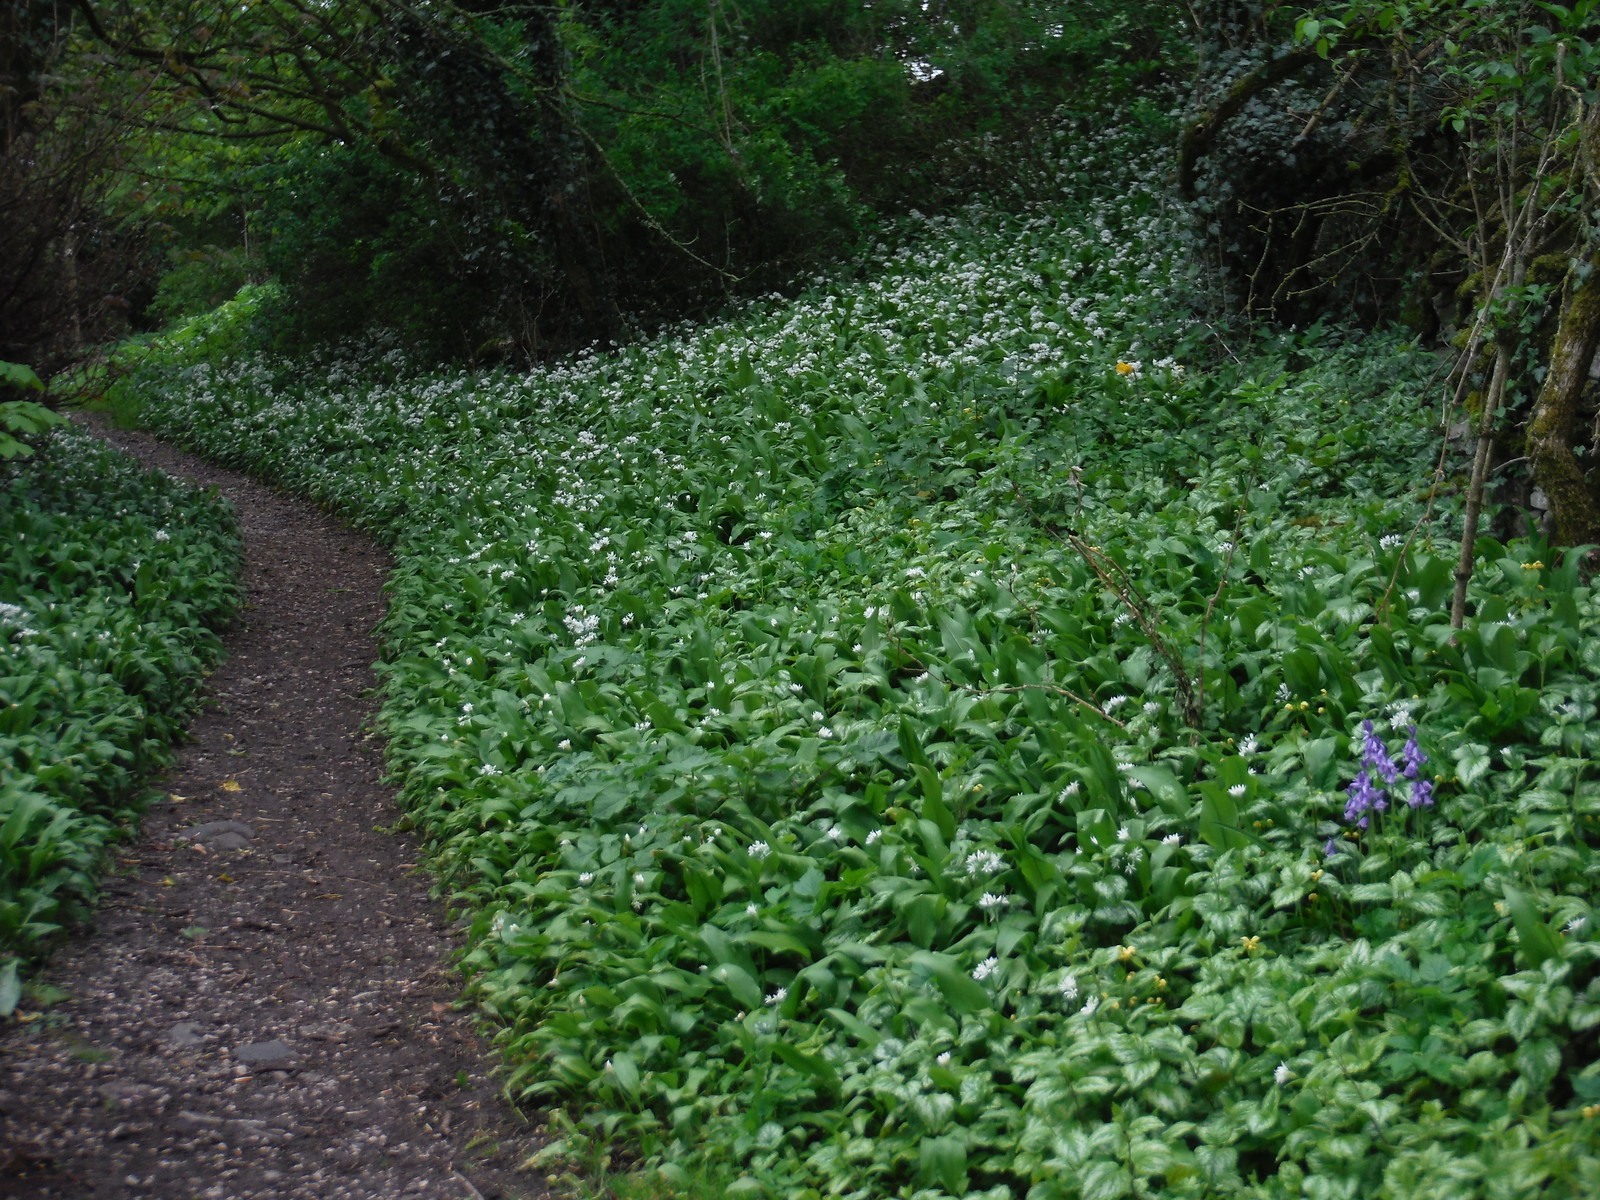 Wild Garlic and a Bluebell, near St. Leonhard's Church, Thorpe SWC Walk 326 - Dovedale (Ashbourne Circular)